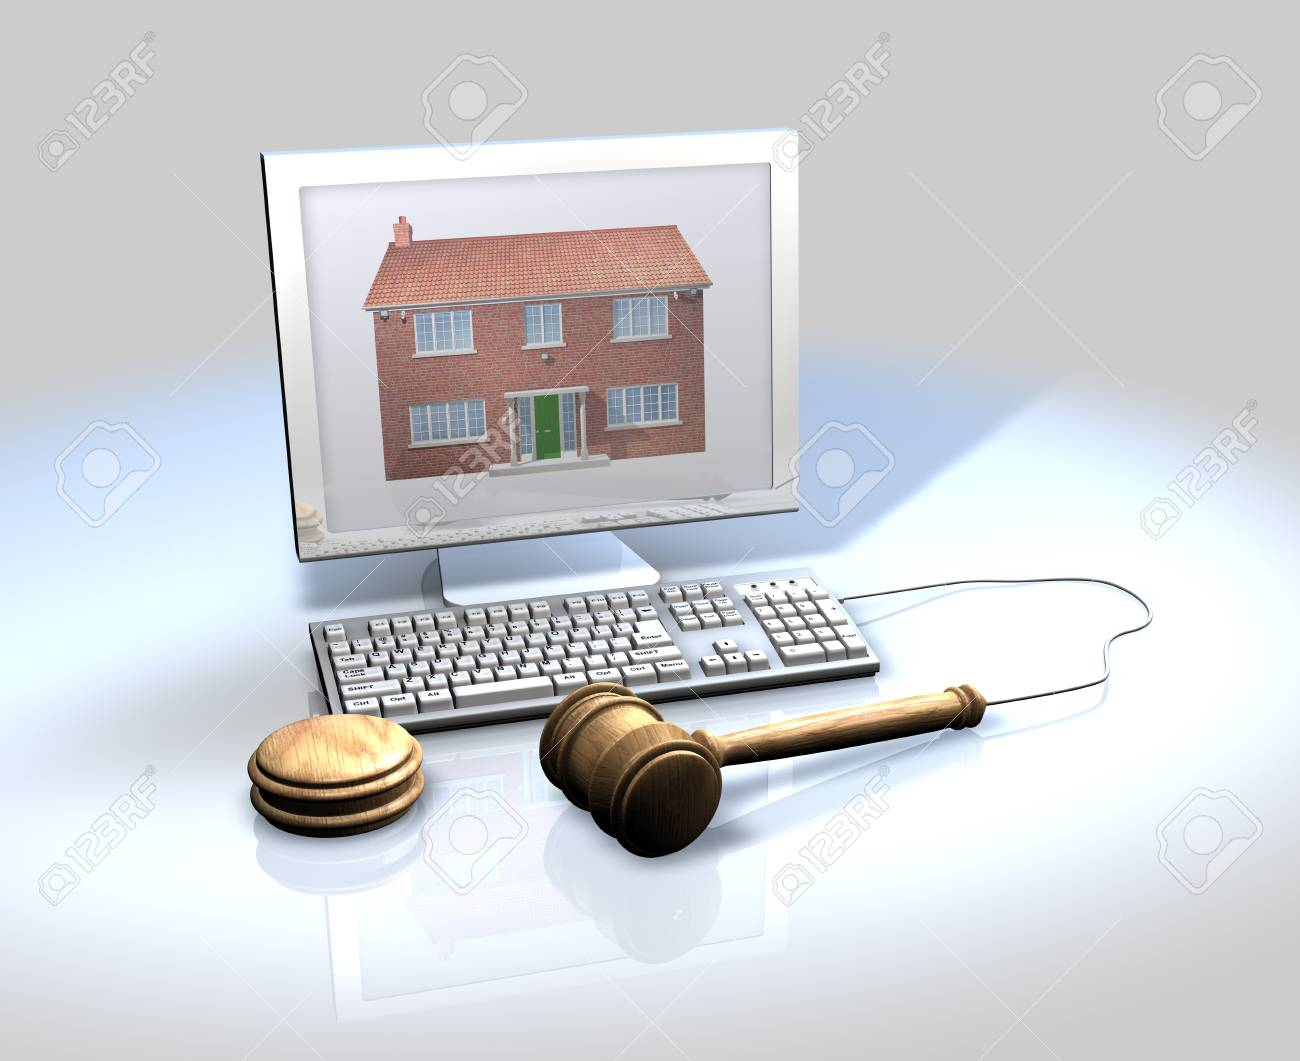 On-line property sales, estate agents, auctions Stock Photo - 13532703